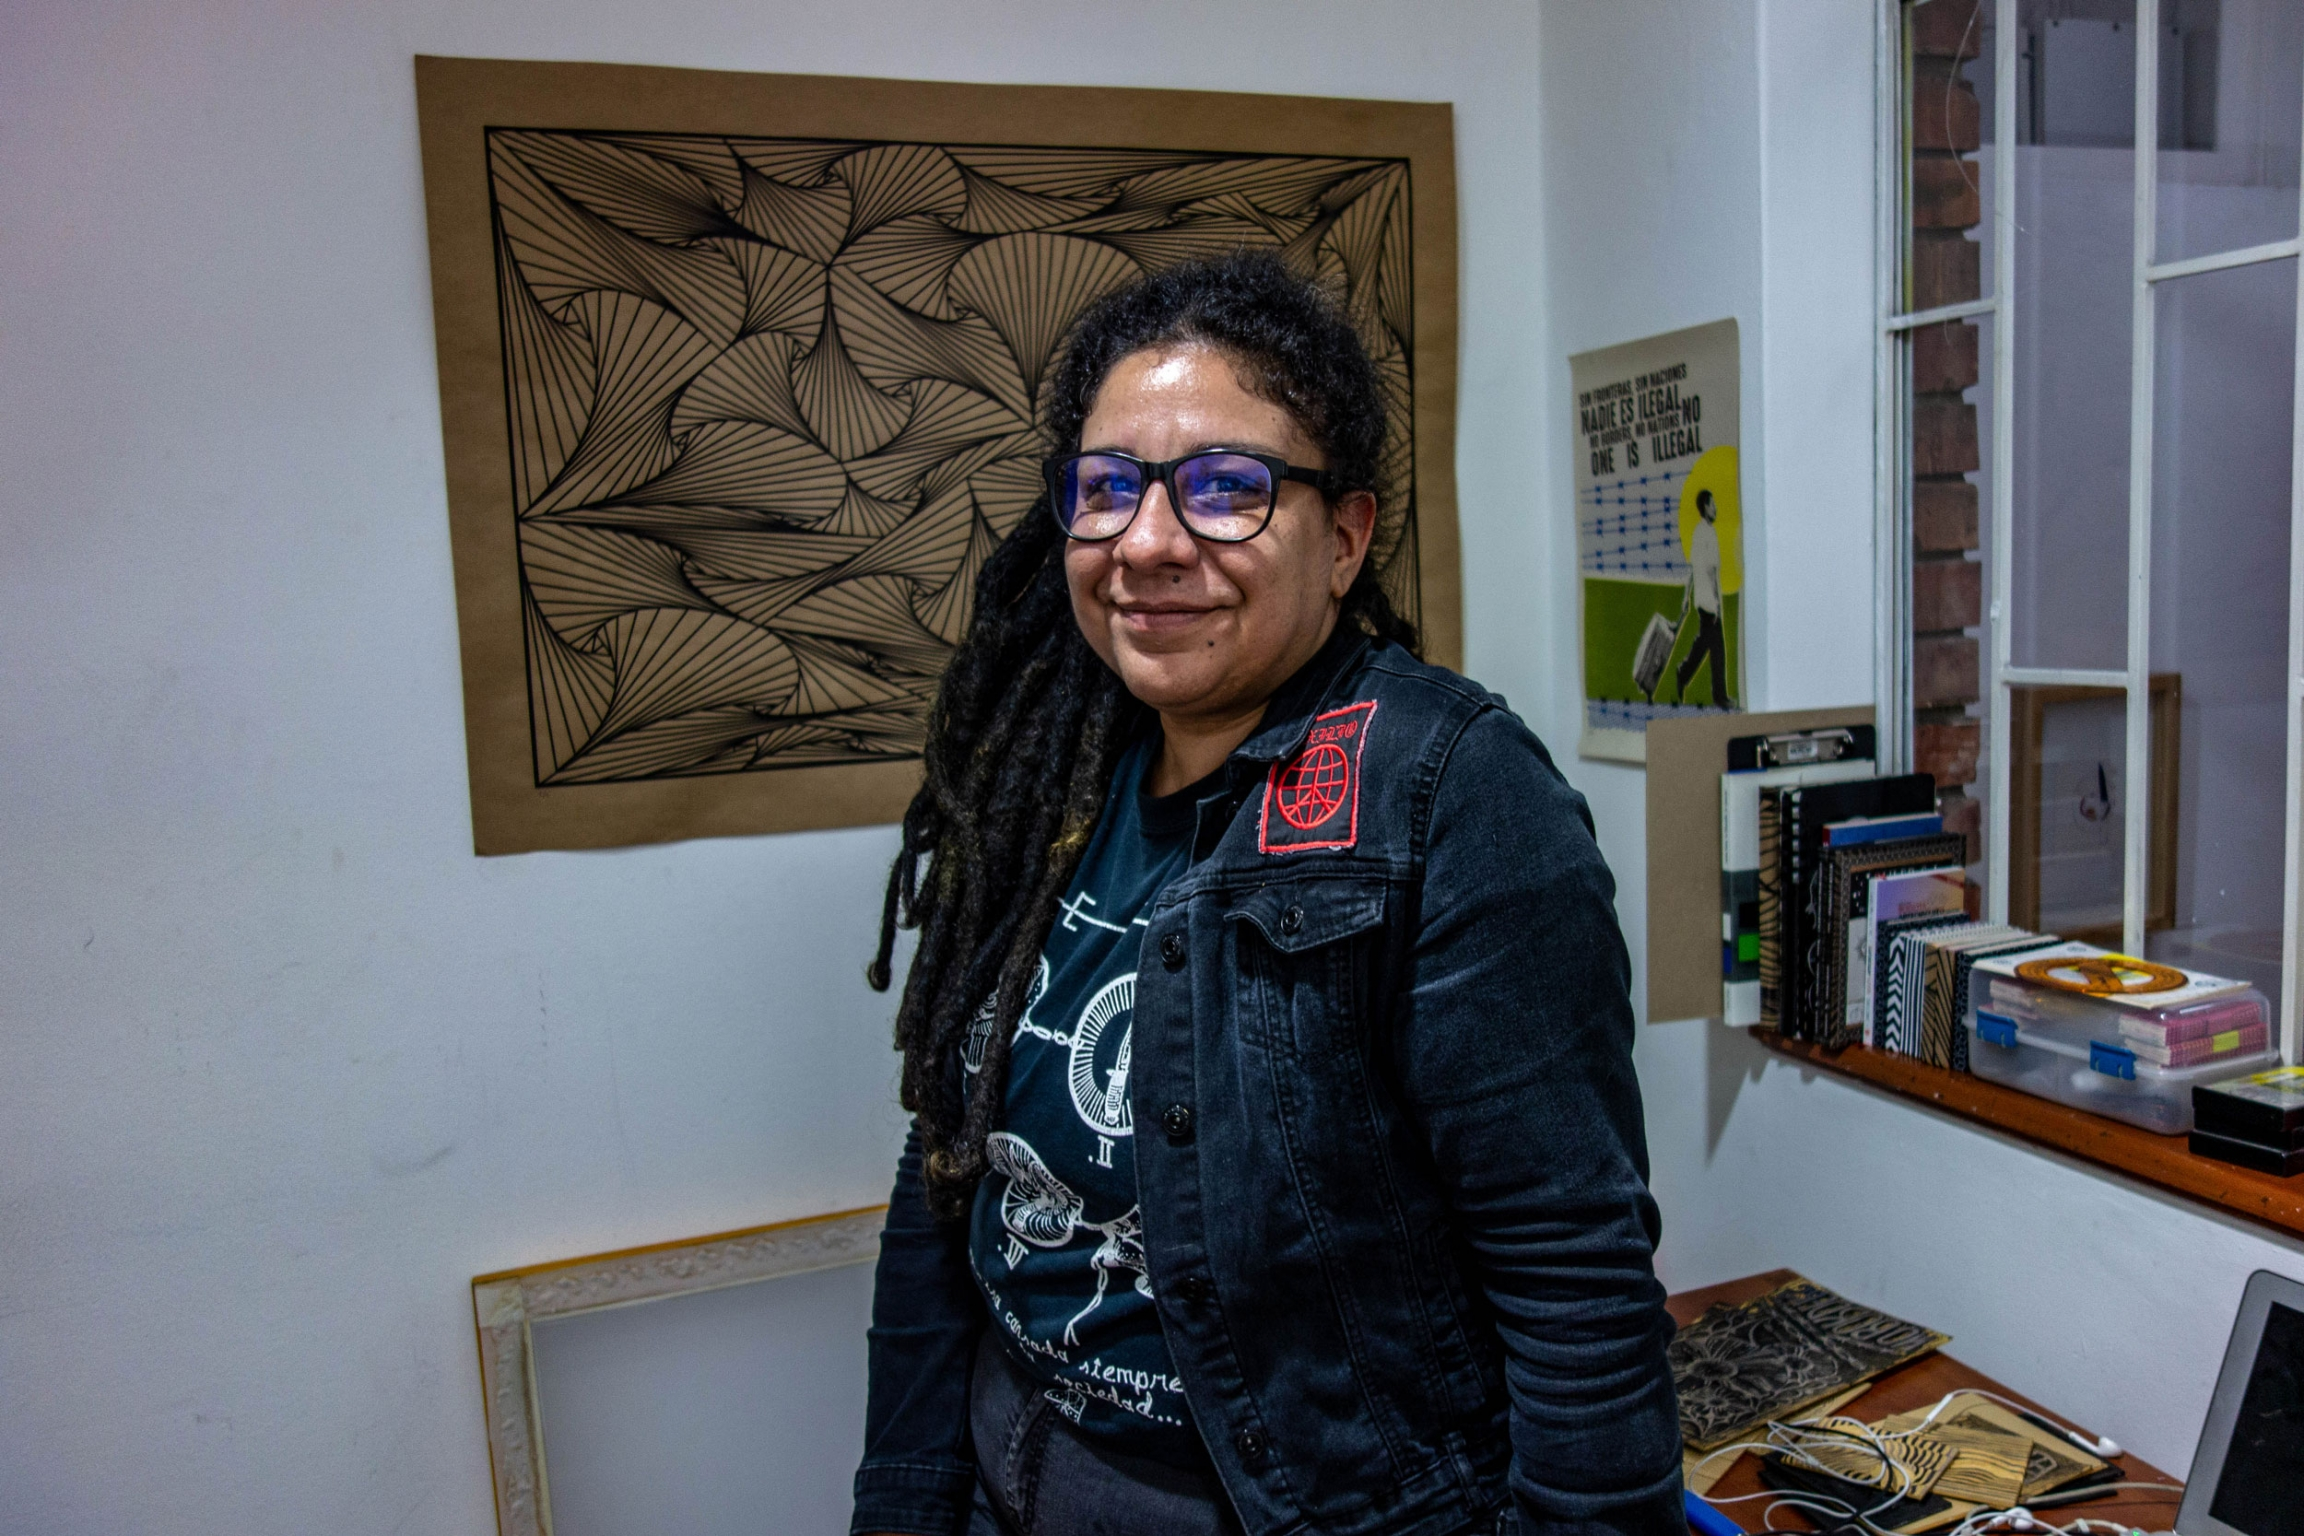 Exilio singer Susana González is shown wearing dread locks and glasses.